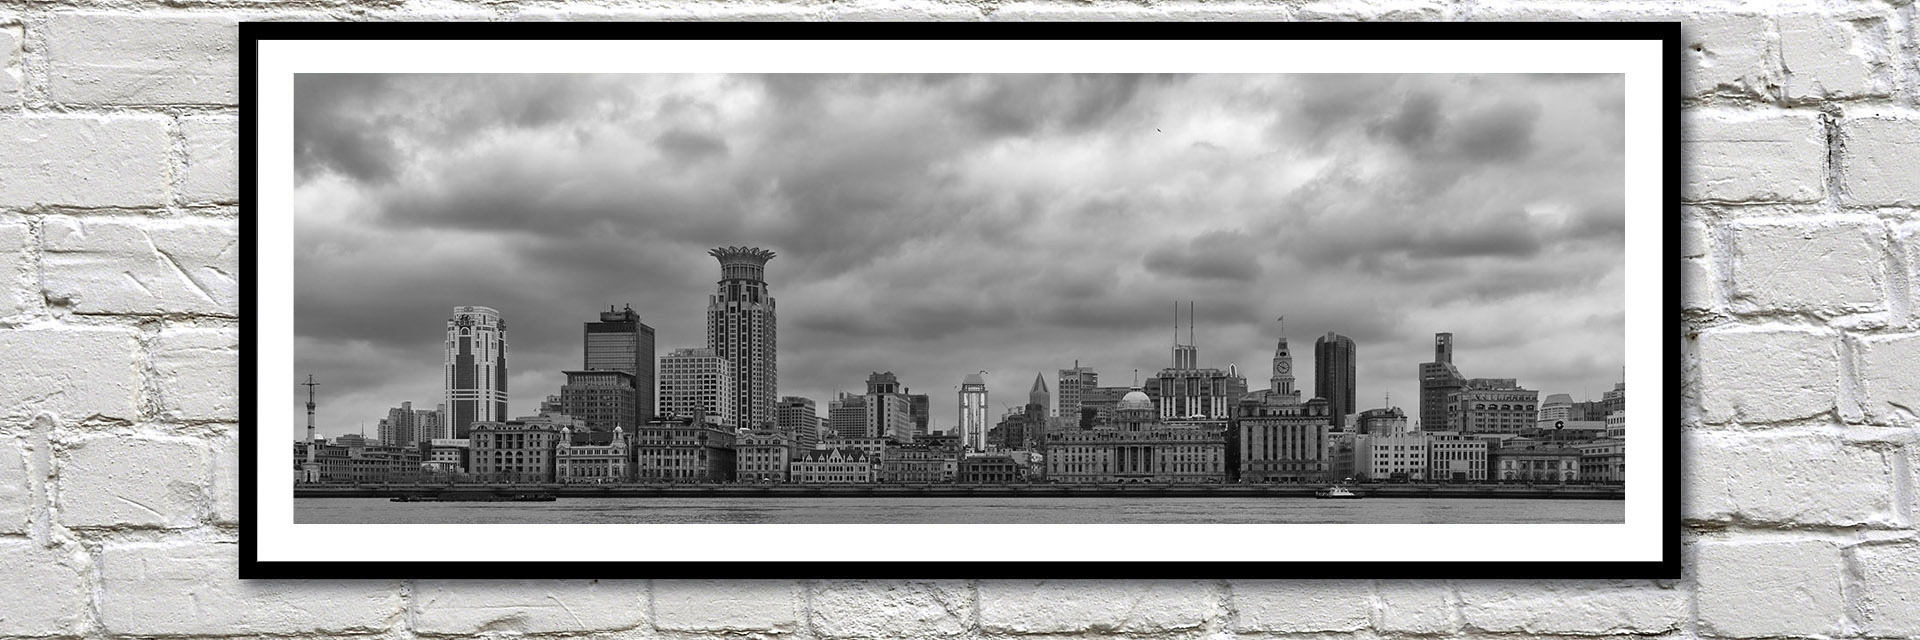 Office art ideas London black and white framed pictures